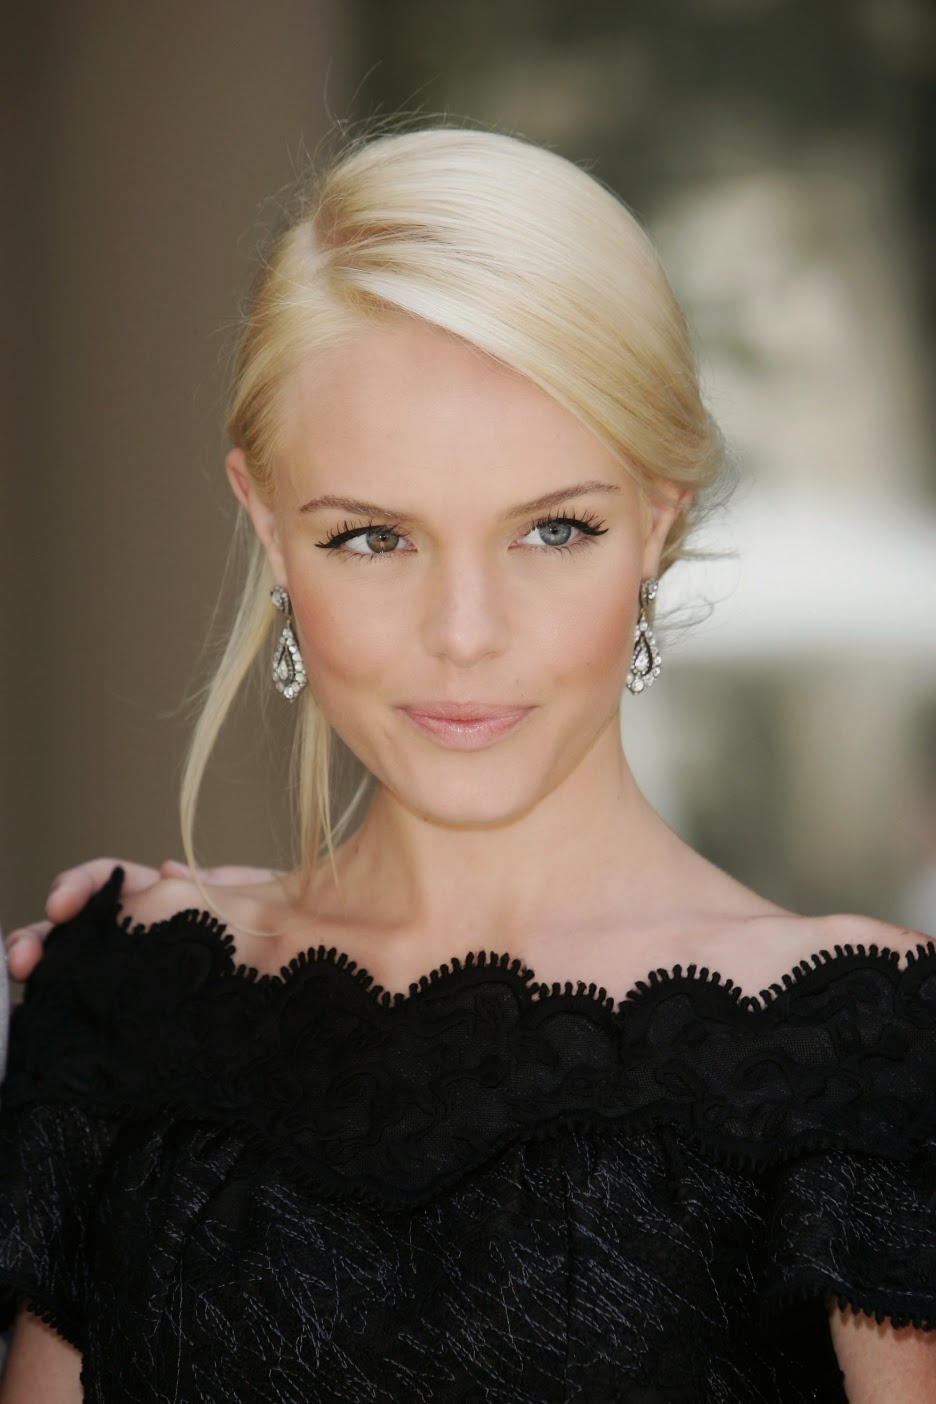 Kate Bosworth naked photos seem to have leaked on the web after being ... Kate Bosworth